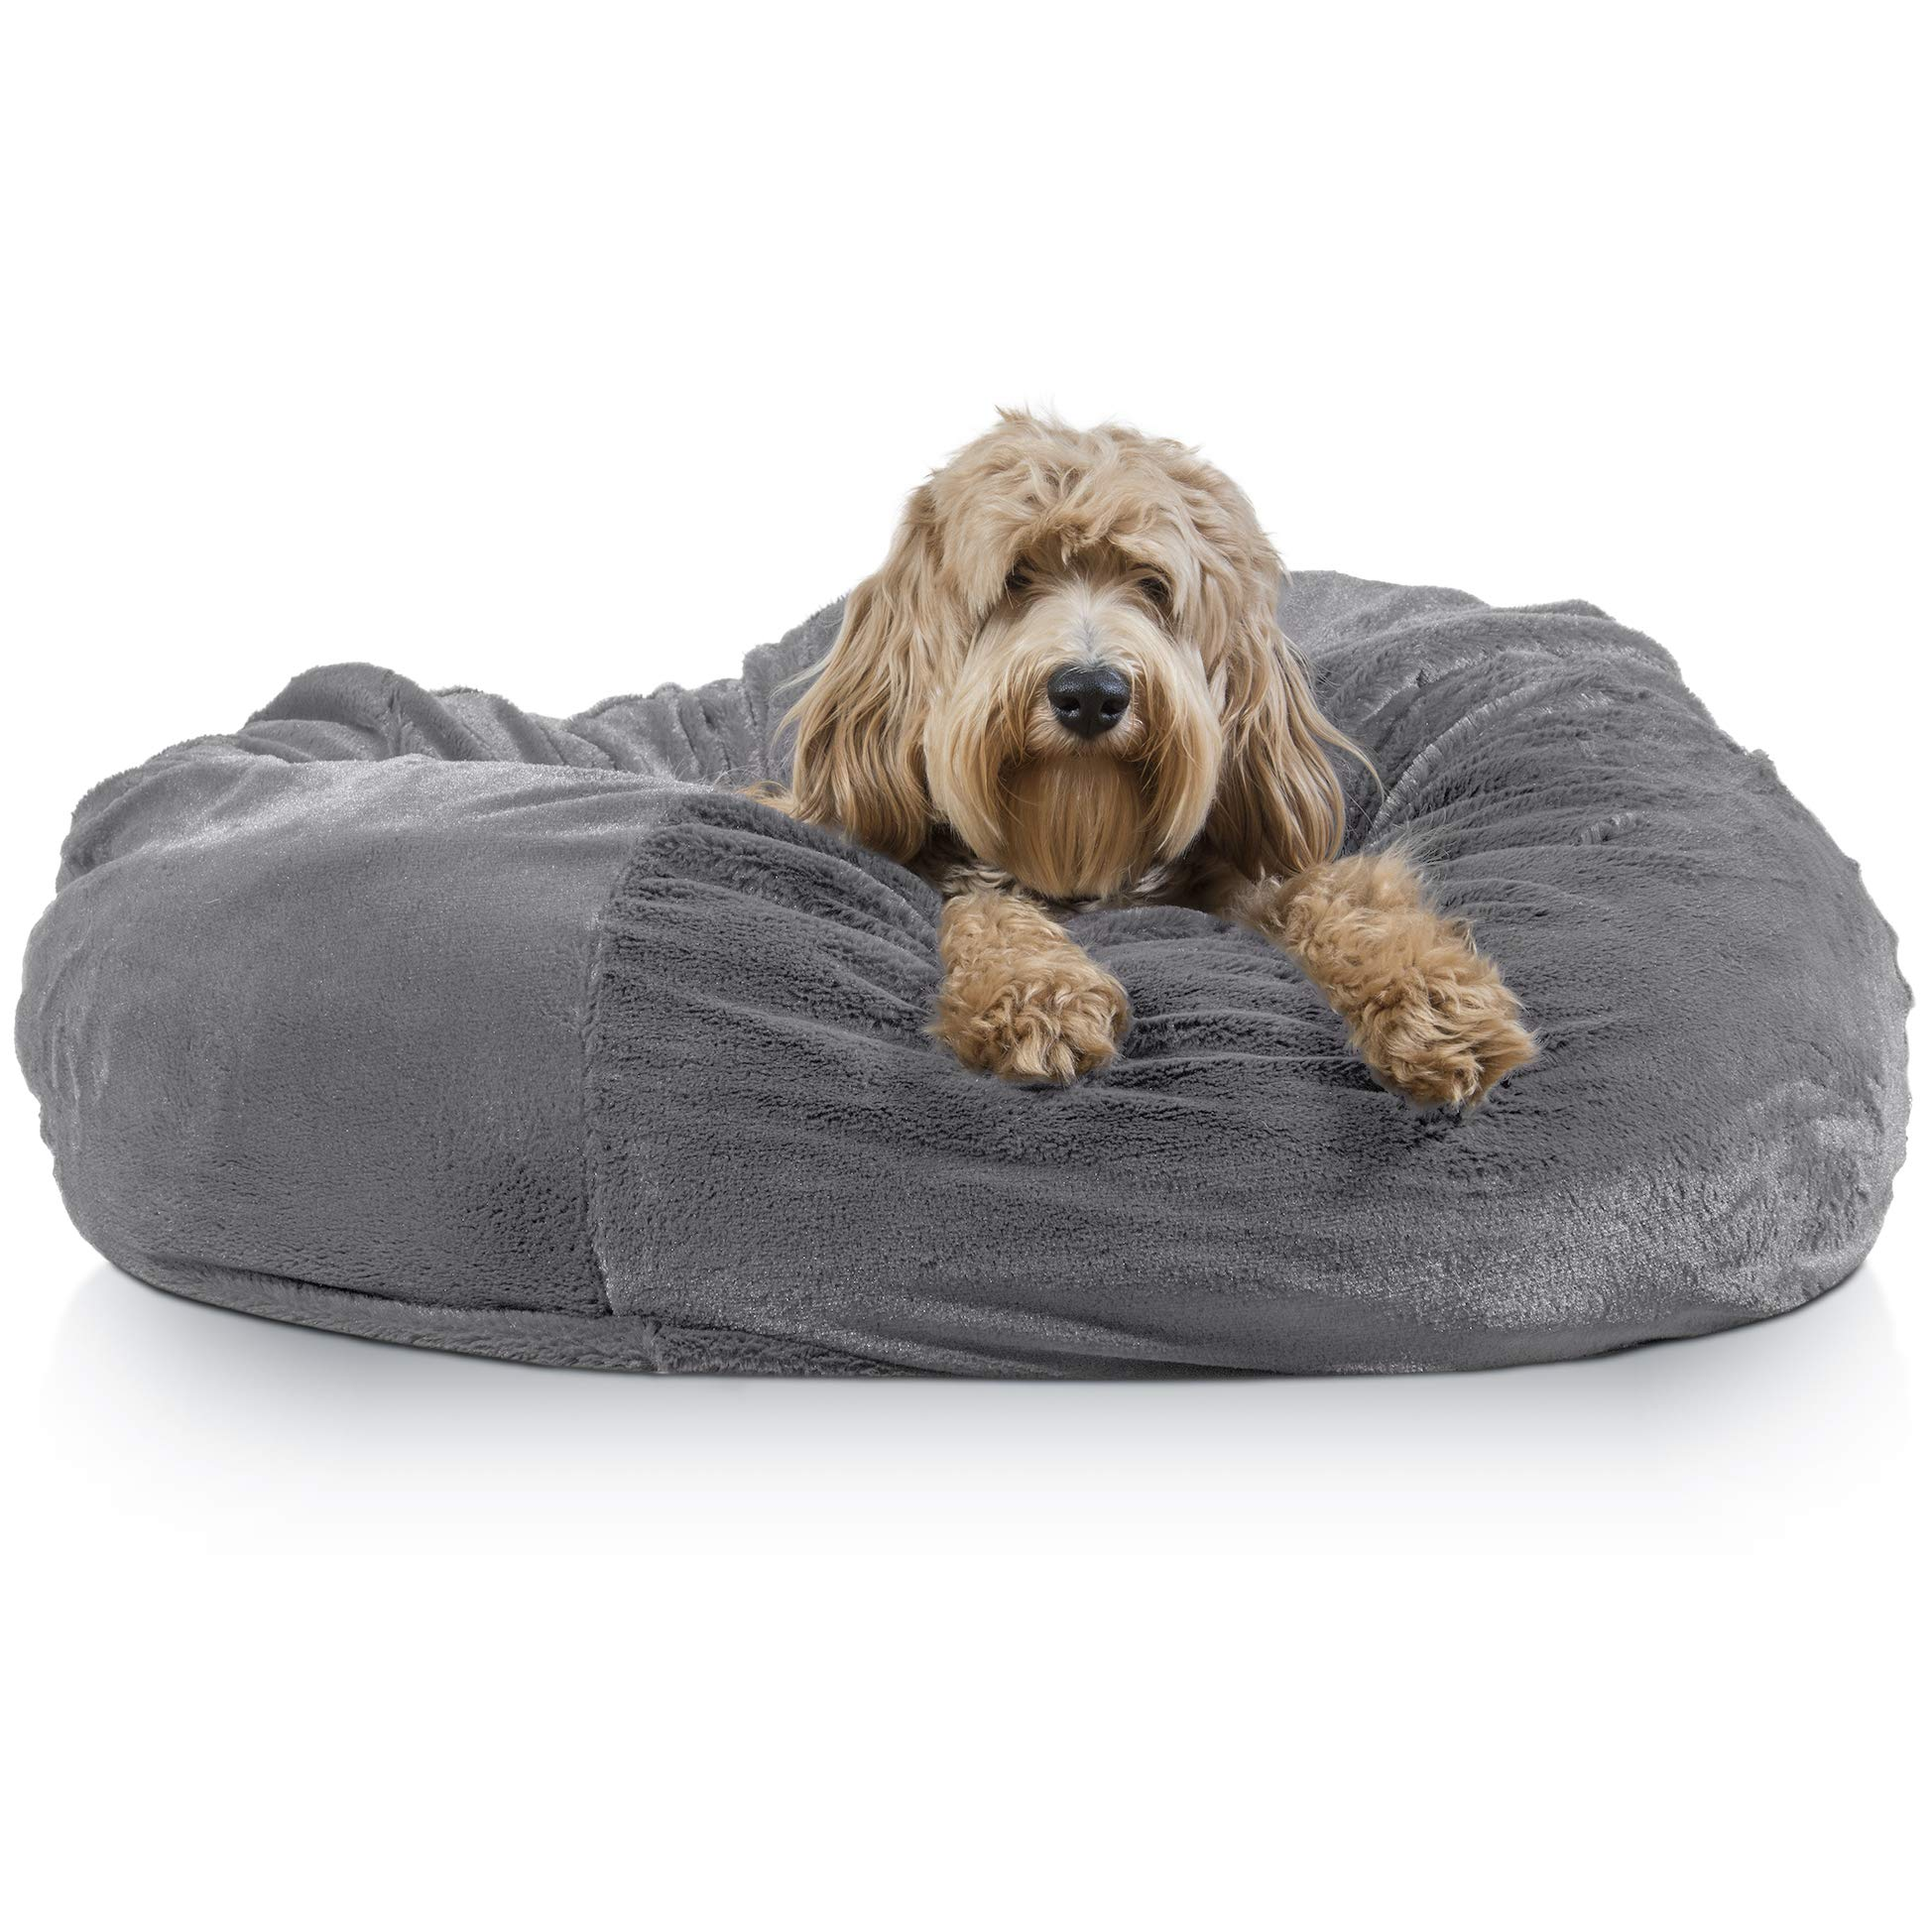 Furhaven Pet Dog Bed | Round Plush Faux Fur Refillable Ball Nest Cushion Pet Bed w/ Removable Cover for Dogs & Cats, Gray Mist, Jumbo by Furhaven